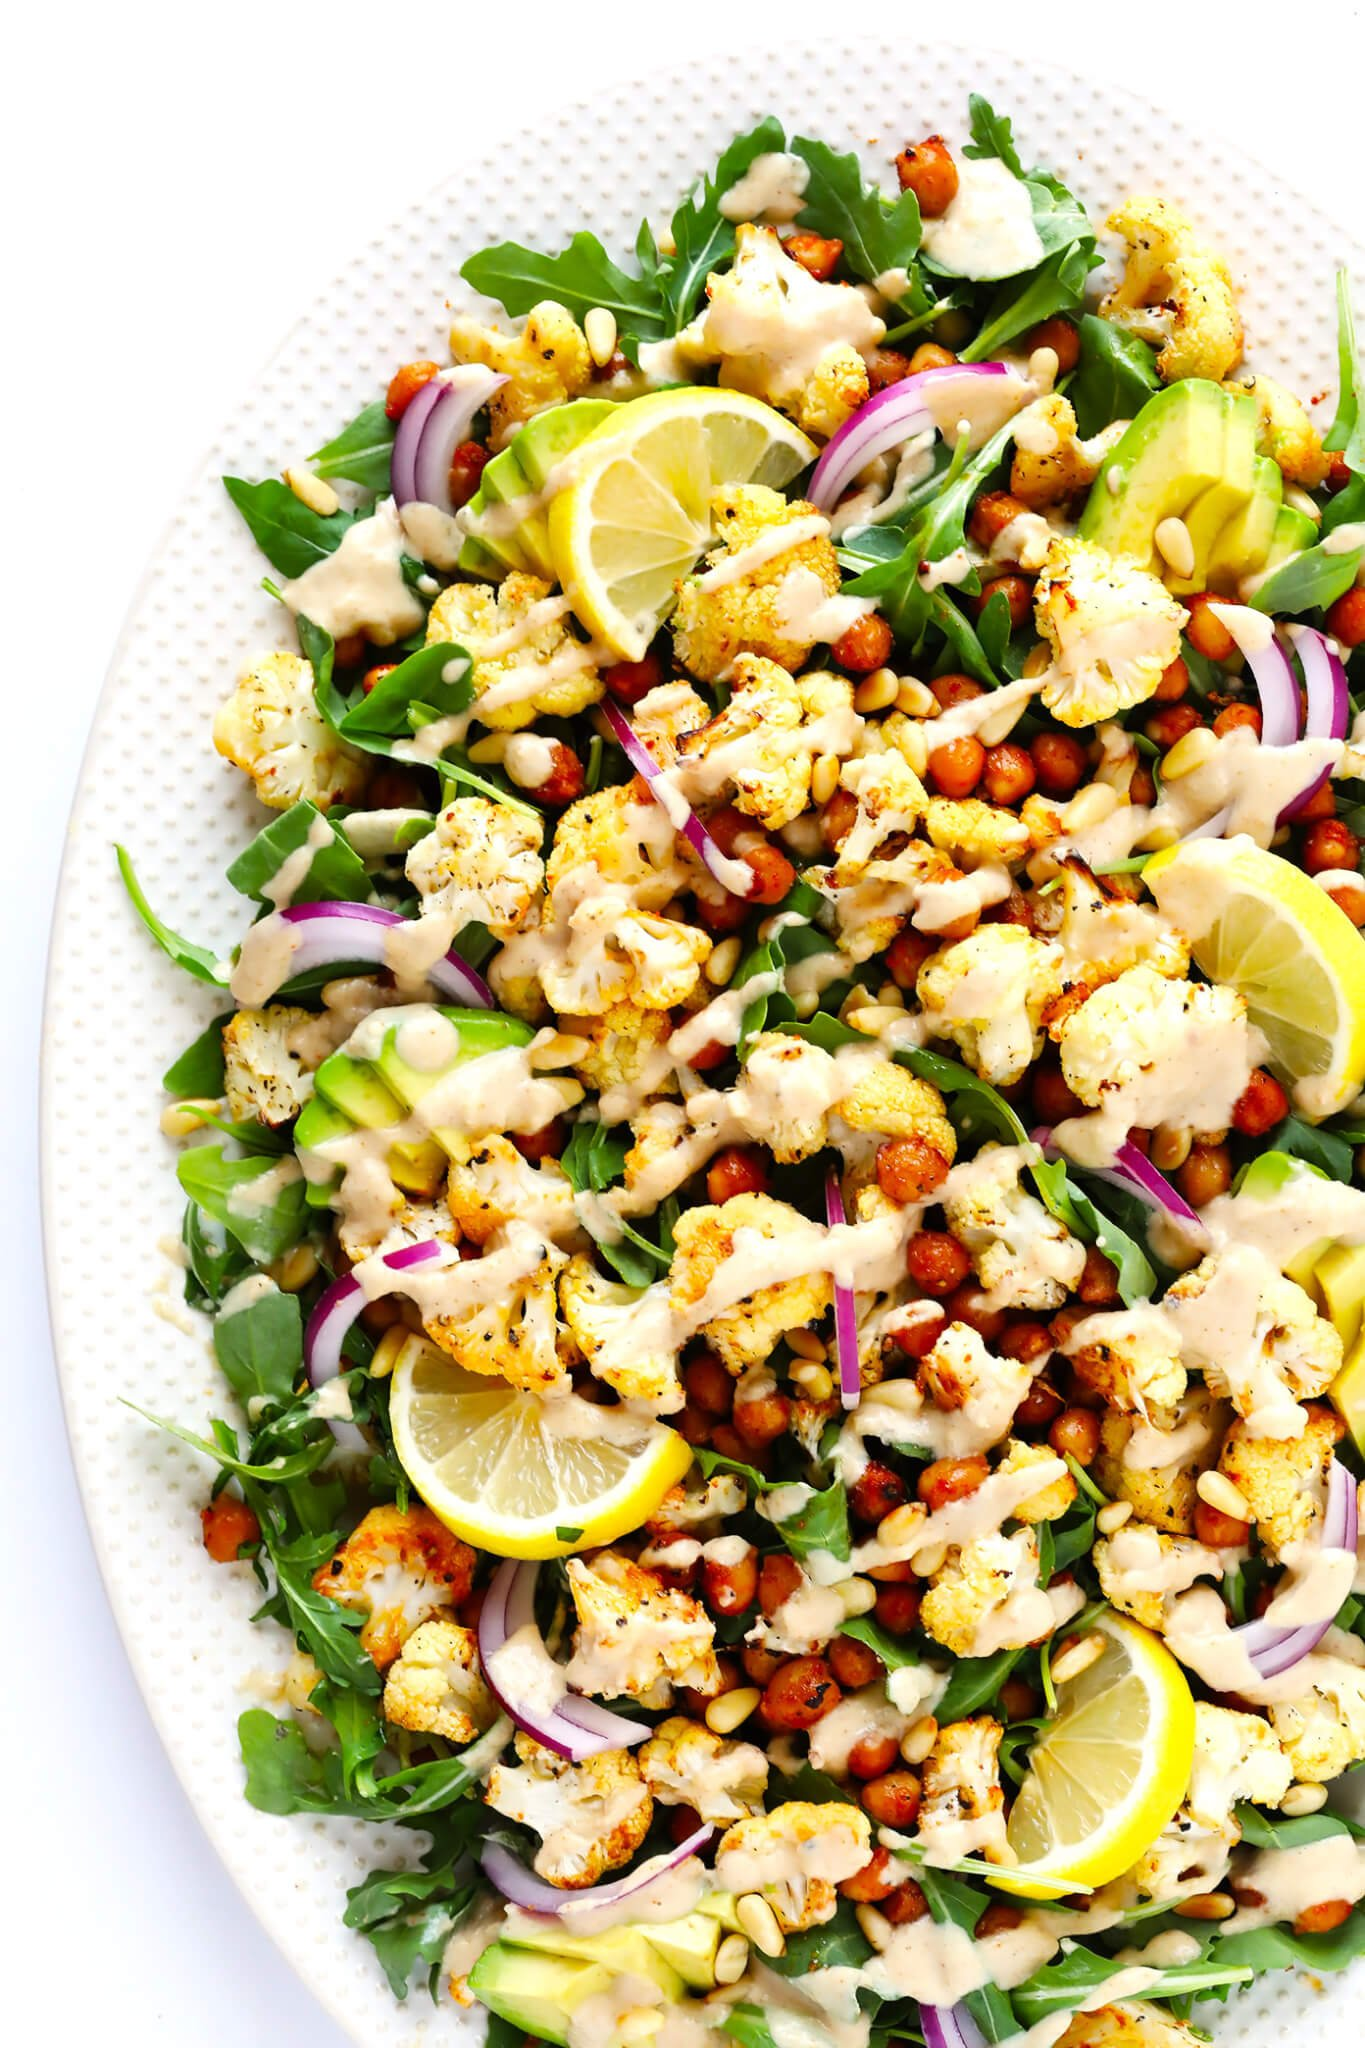 Roasted Cauliflower, Chickpea and Arugula Salad Recipe with Tahini Dressing